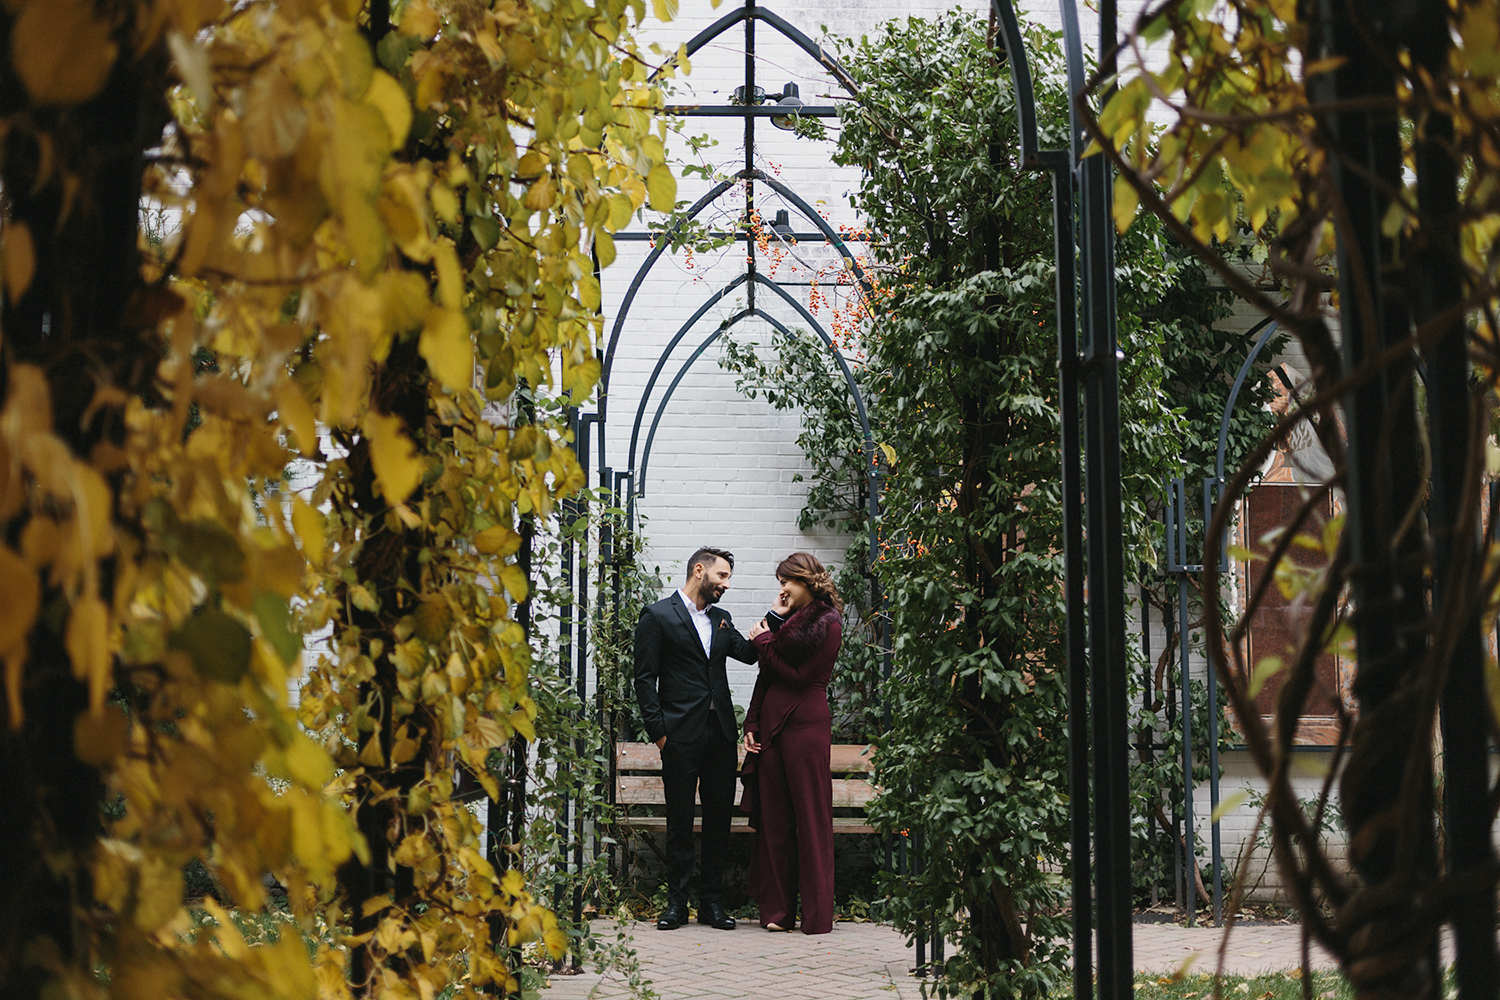 toronto-restaurant-elopement-small-wedding-intimate-portraits-of-bride-and-groom-in-archway.jpg